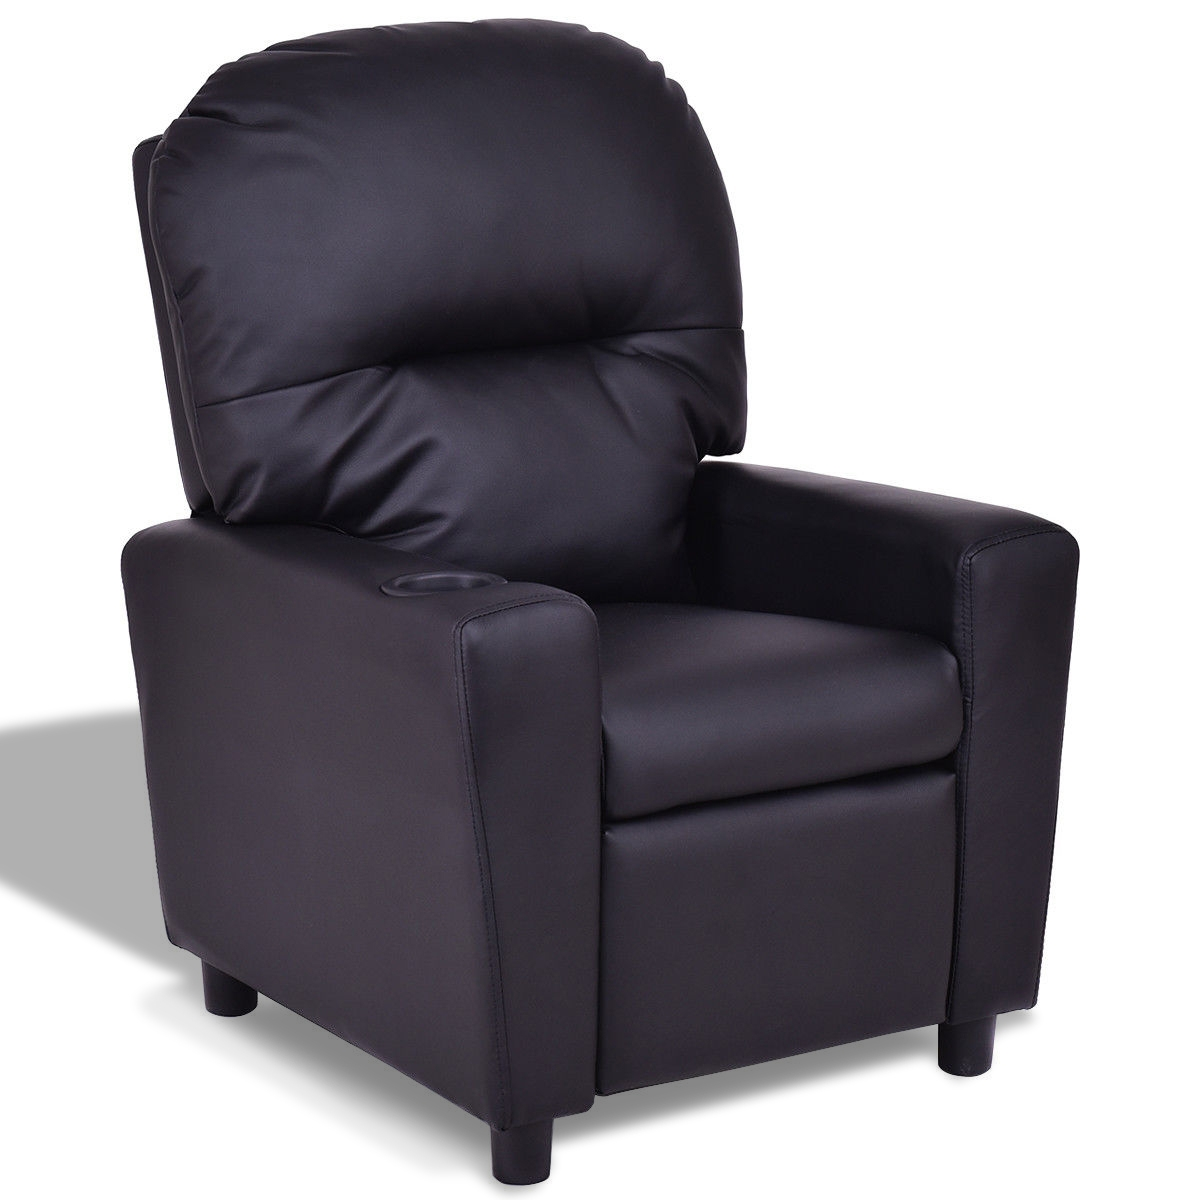 Kids Armchair Recliner Children's Furniture Sofa w/ Cup Holder HW56245